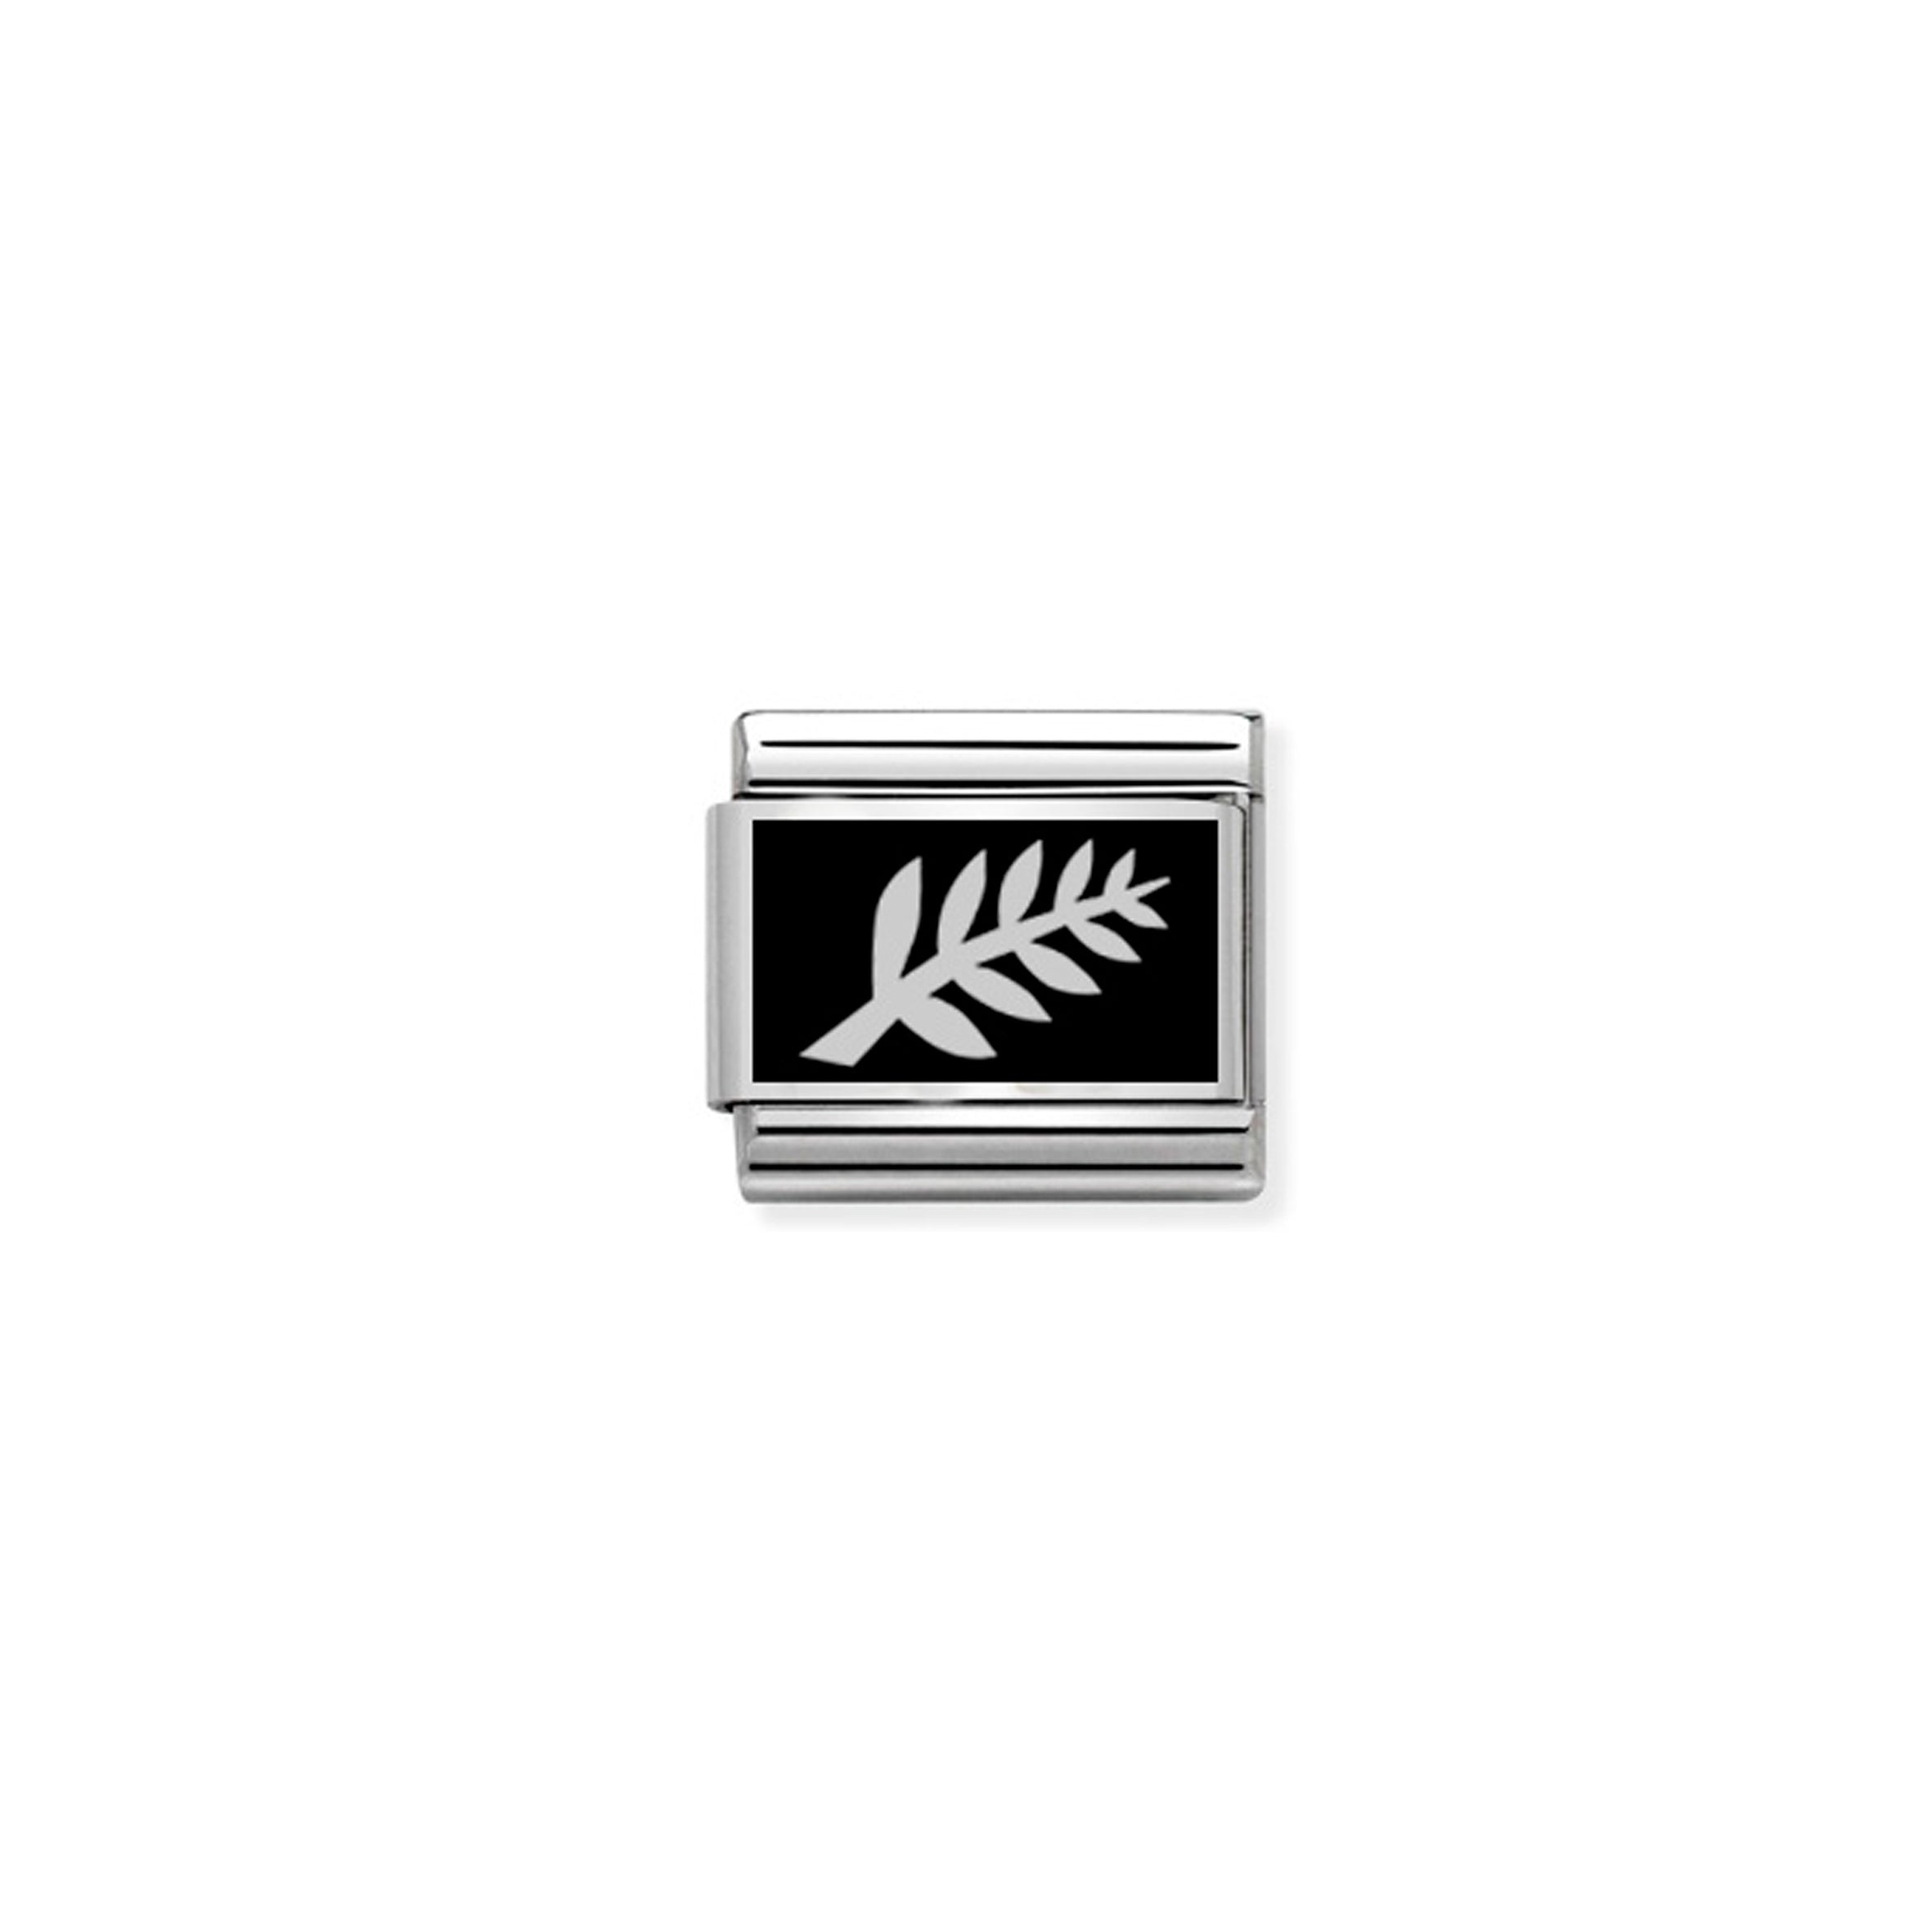 NOMINATION - Composable Classic SYMBOLS st/steel, enamel & silver 925 (NZ SILVER FERN)